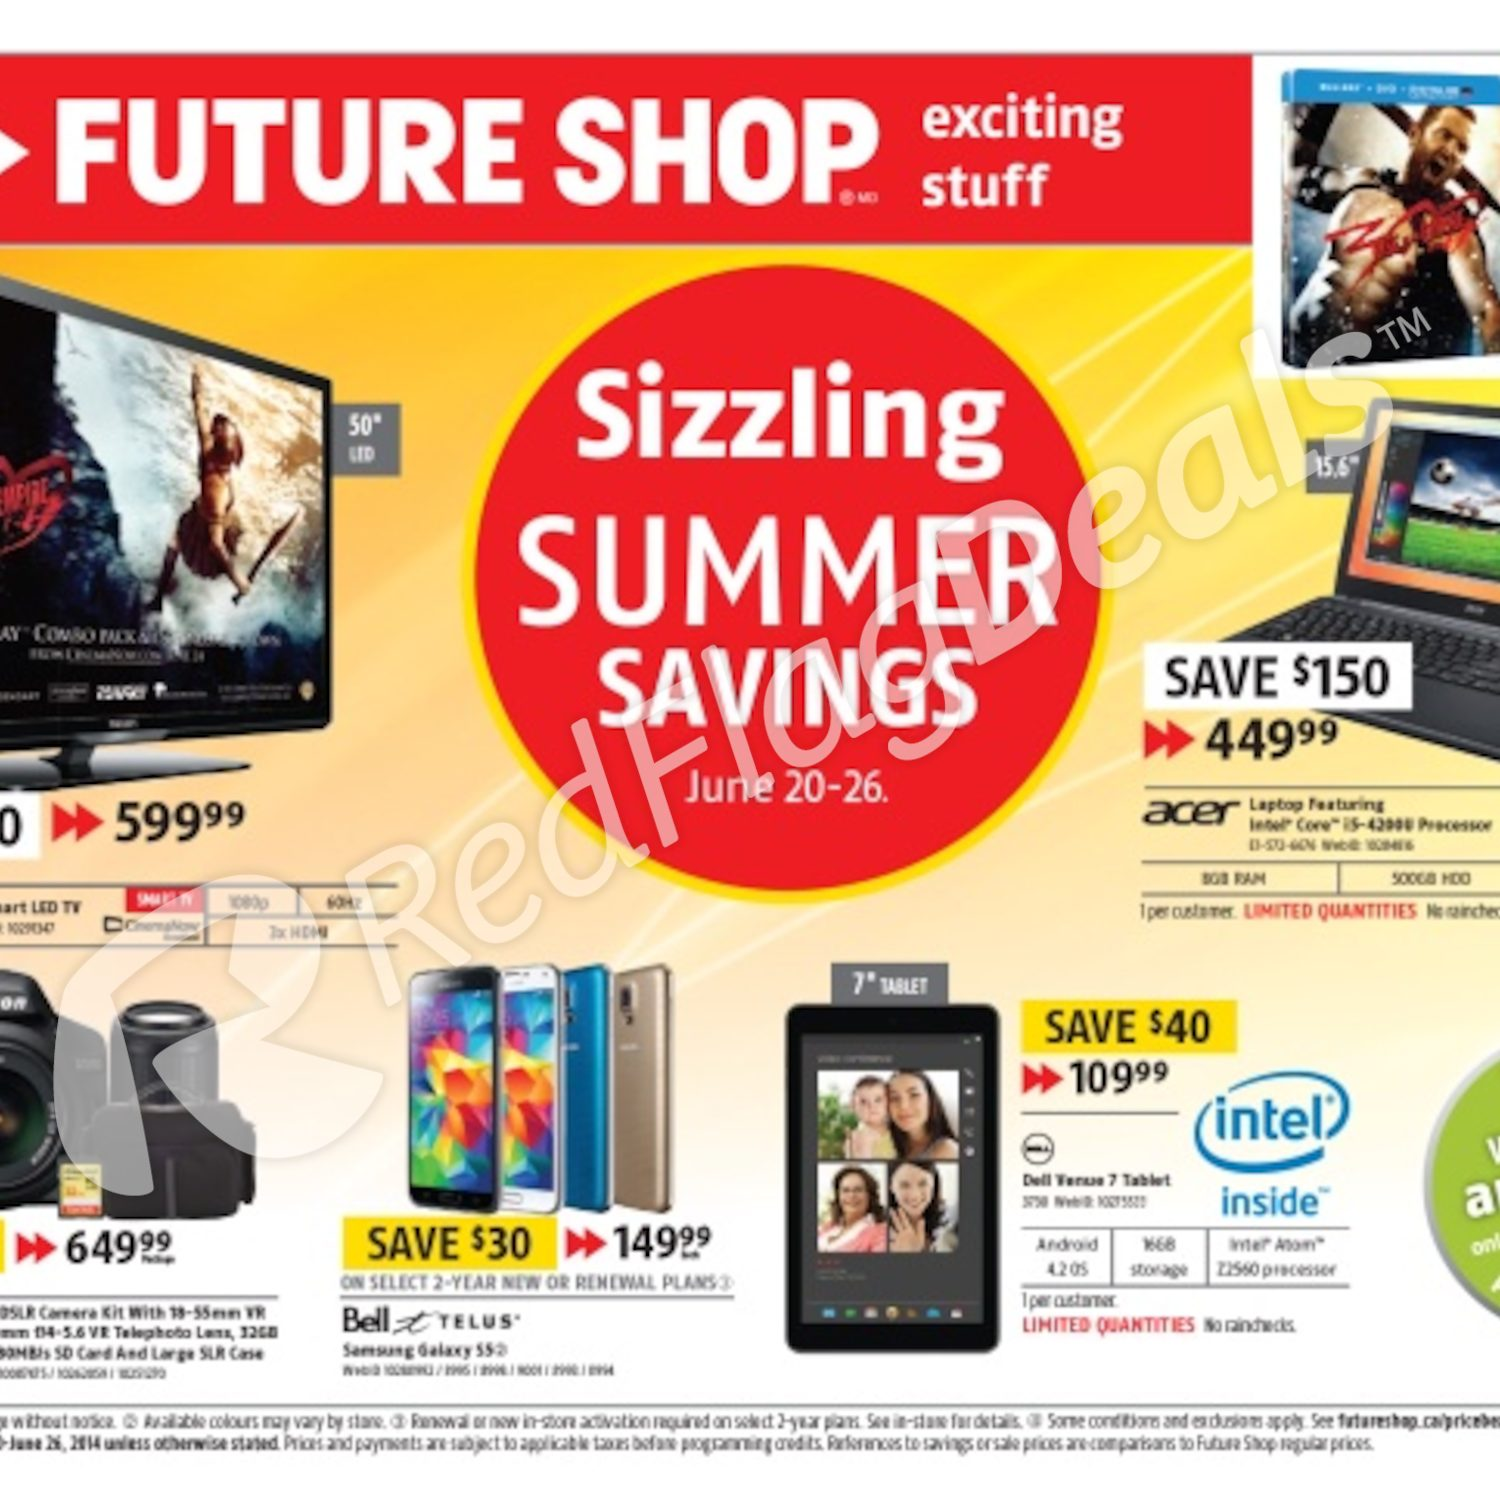 Future Shop Weekly Flyer Sizzling Summer Savings Phone Jack Wiring Question For Voip Redflagdealscom Forums Jun 20 26